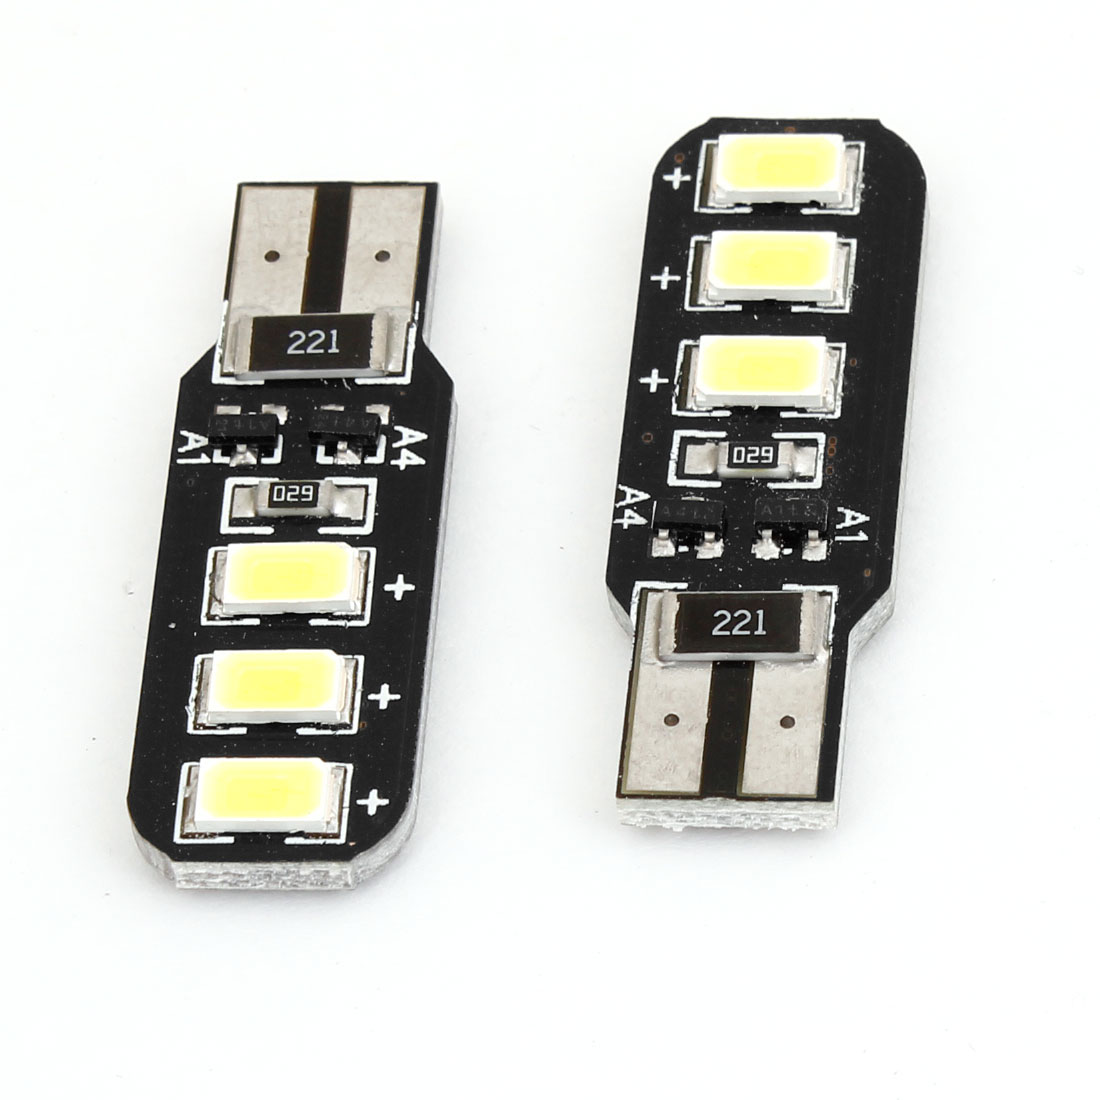 2 x T10 White 6 LED 5630 SMD Canbus Dashboard Side Marker Light Bulb for Car